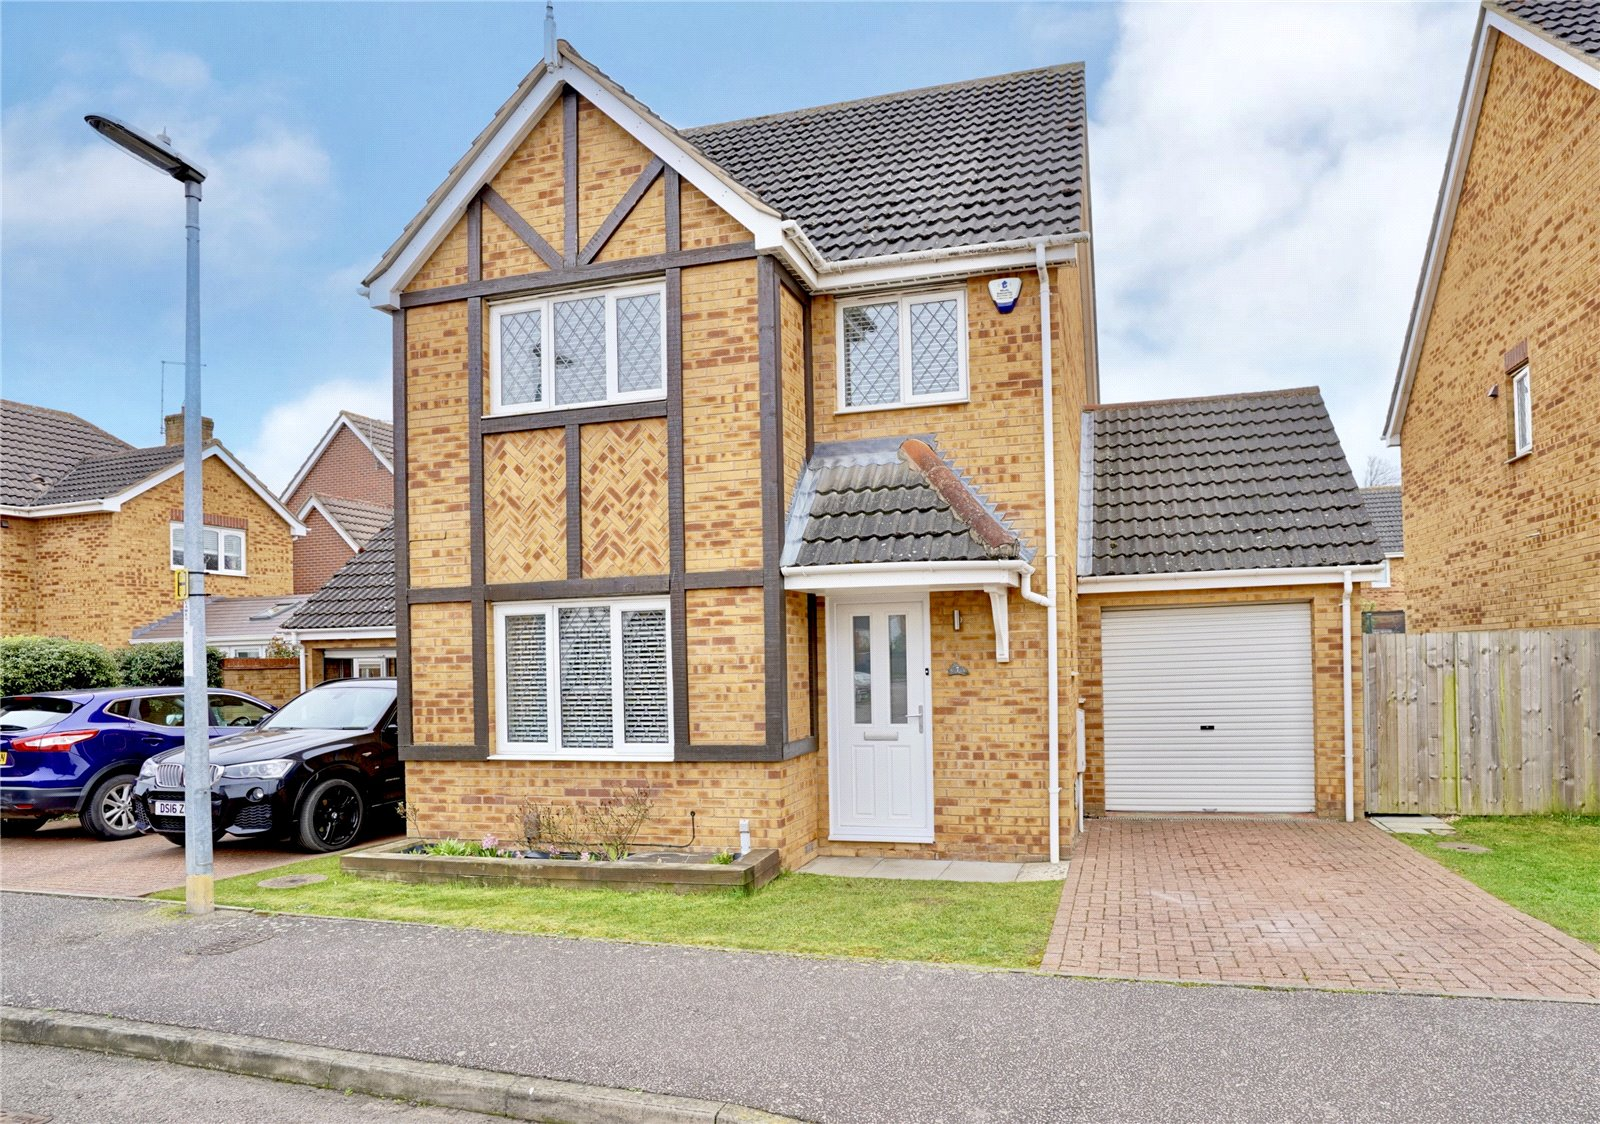 3 bed house for sale in St Neots, PE19 1RD  - Property Image 1